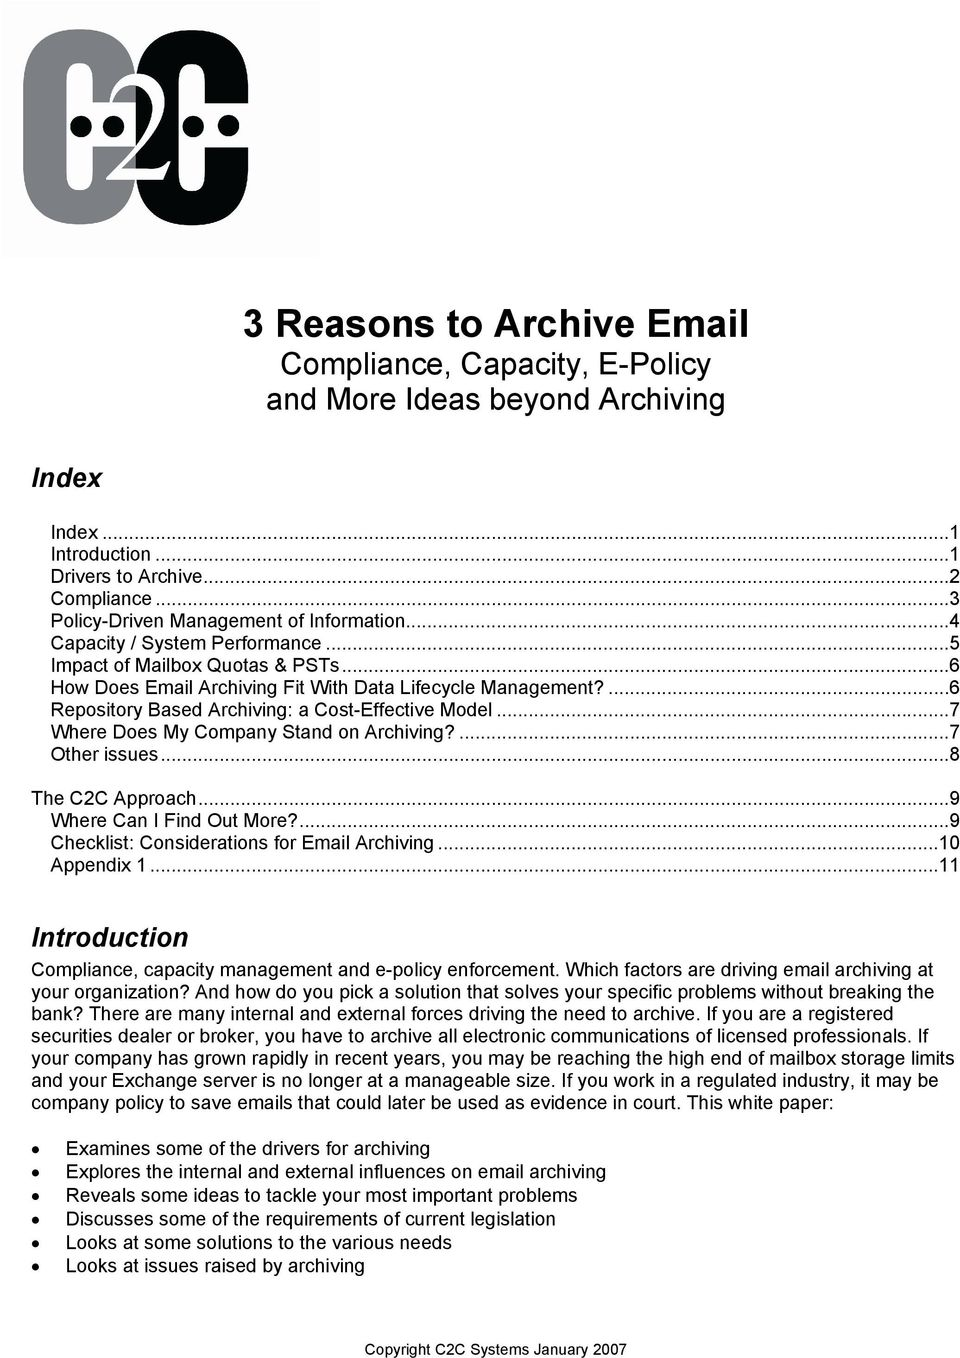 ..7 Where Does My Company Stand on Archiving?...7 Other issues...8 The C2C Approach...9 Where Can I Find Out More?...9 Checklist: Considerations for Email Archiving...10 Appendix 1.